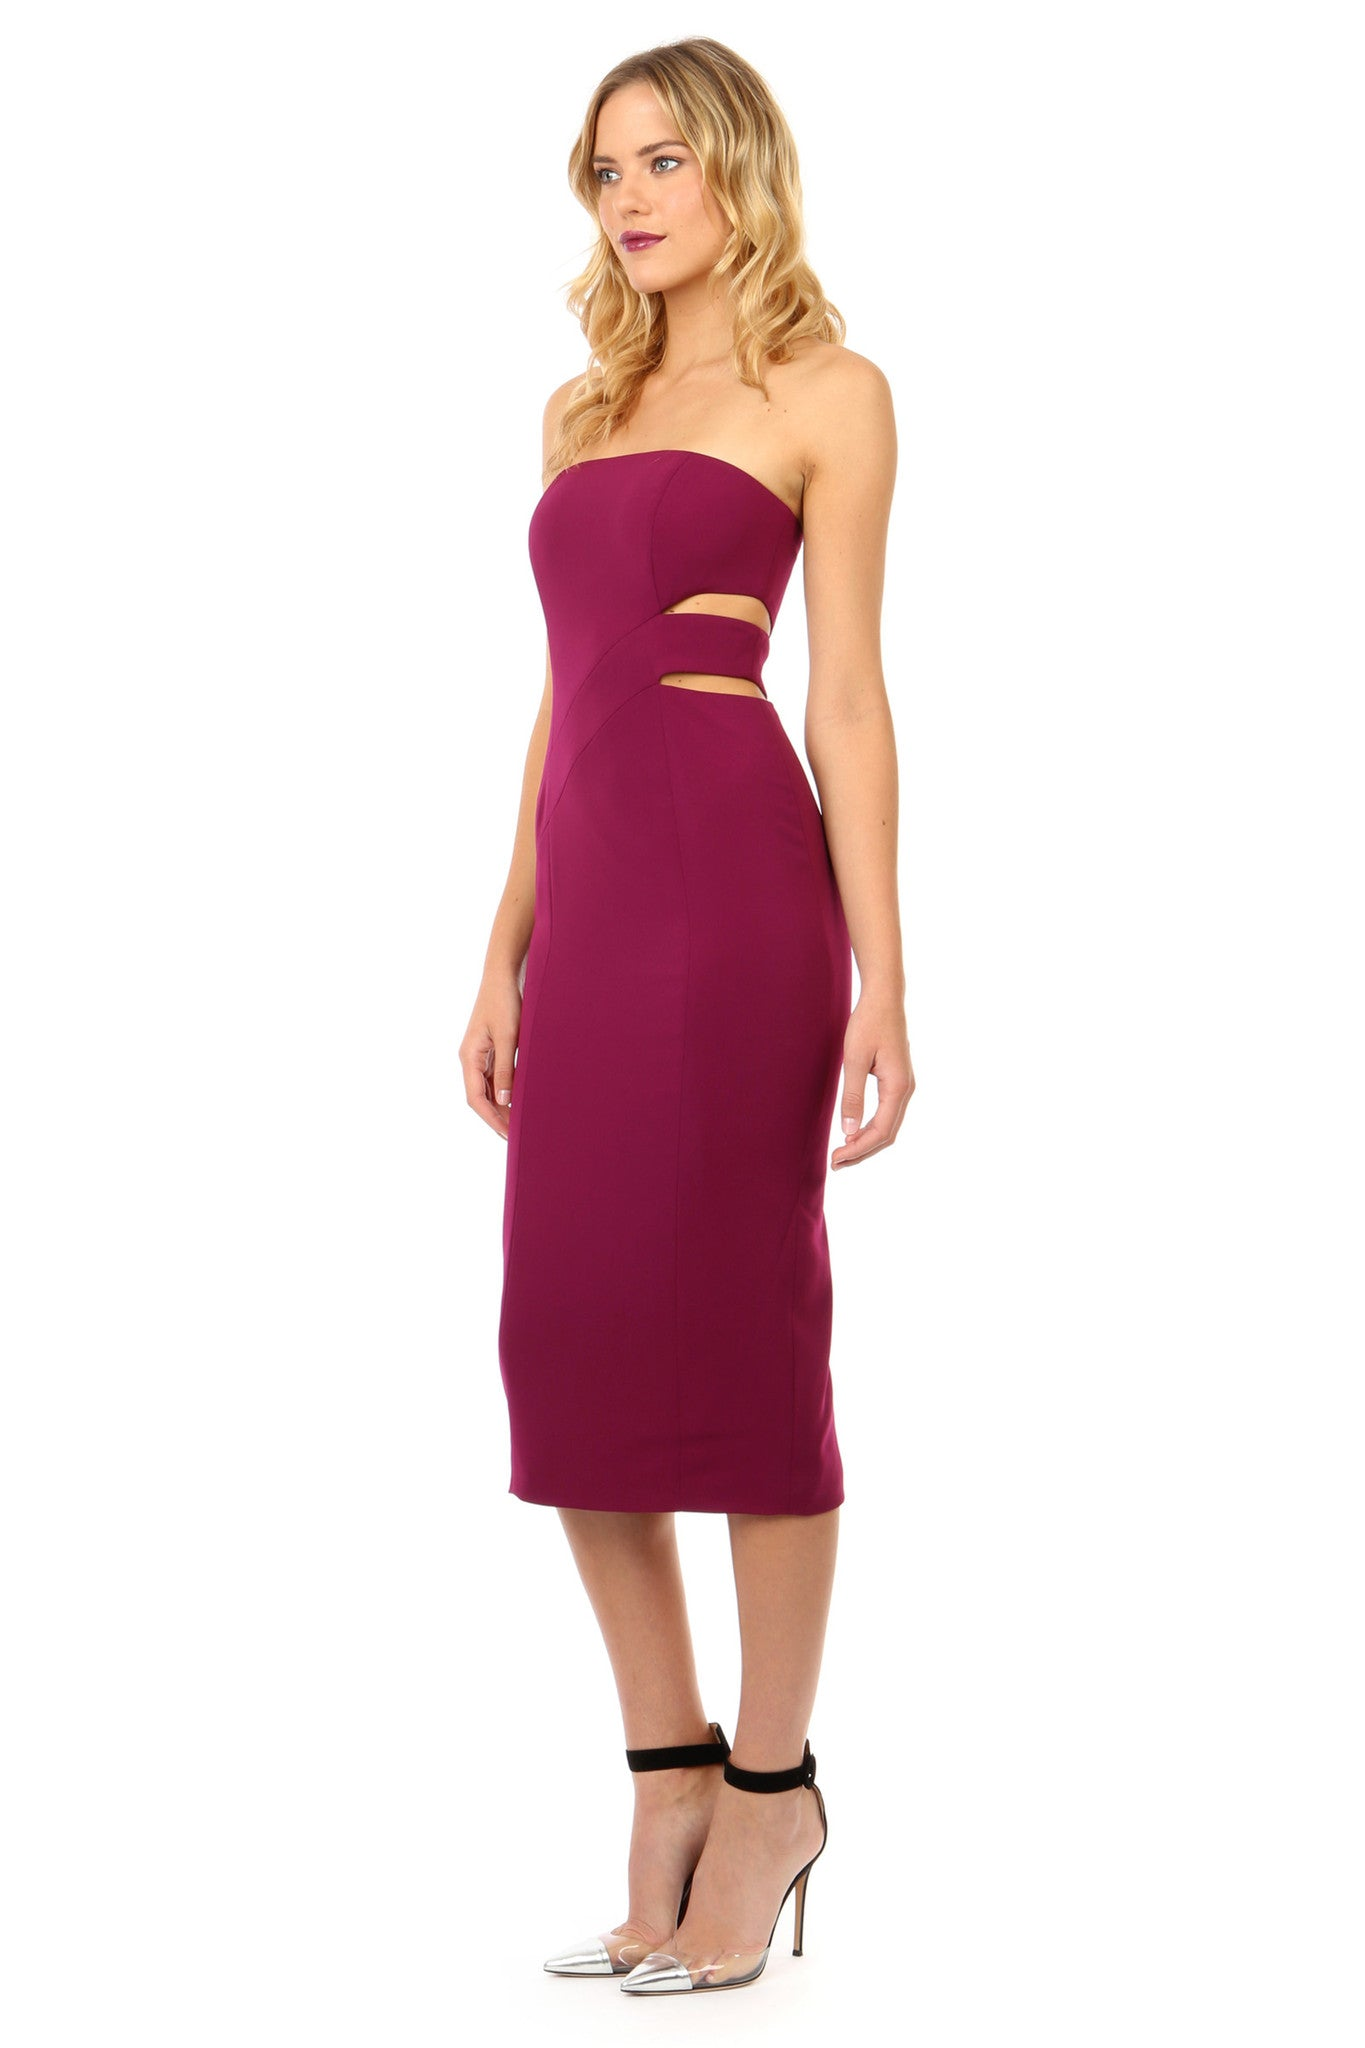 Jay Godfrey Plum Strapless Cut-Out Midi Dress - Side View